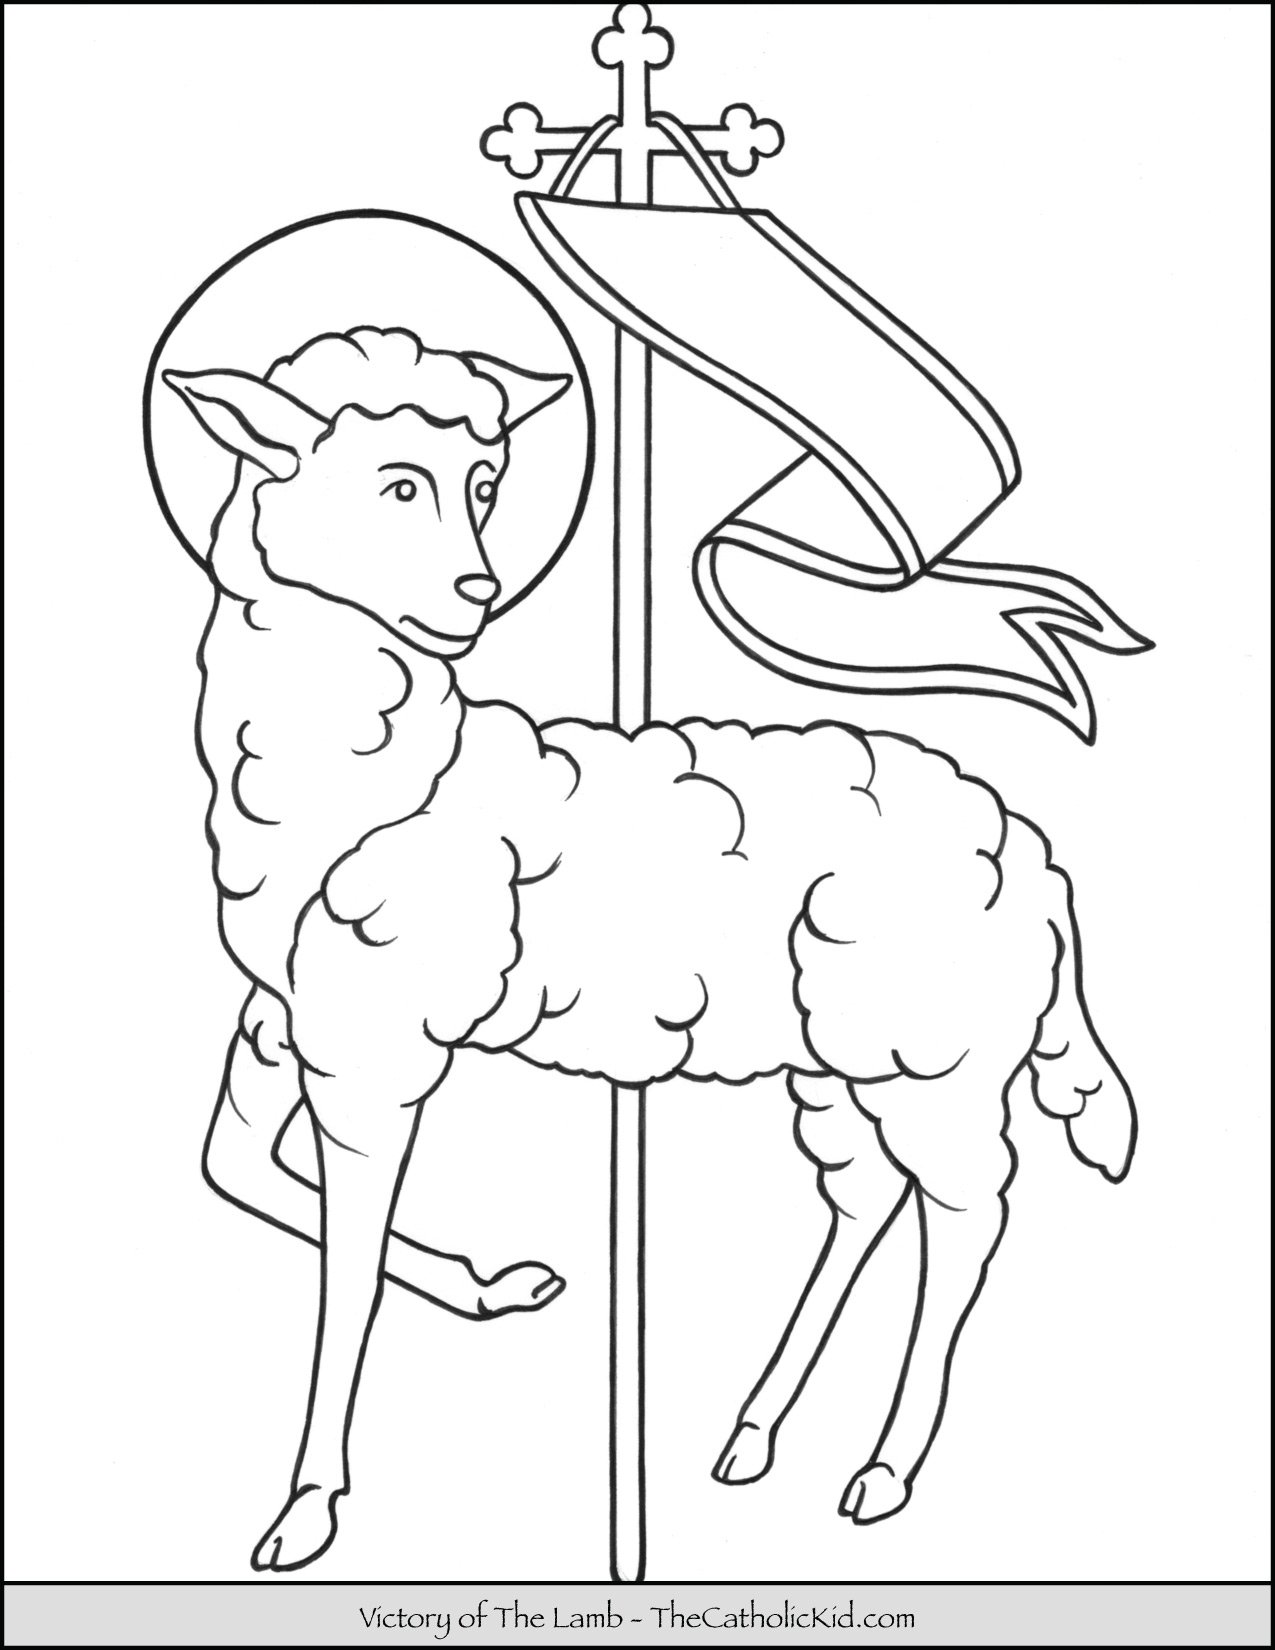 Victory of the Lamb Coloring Page